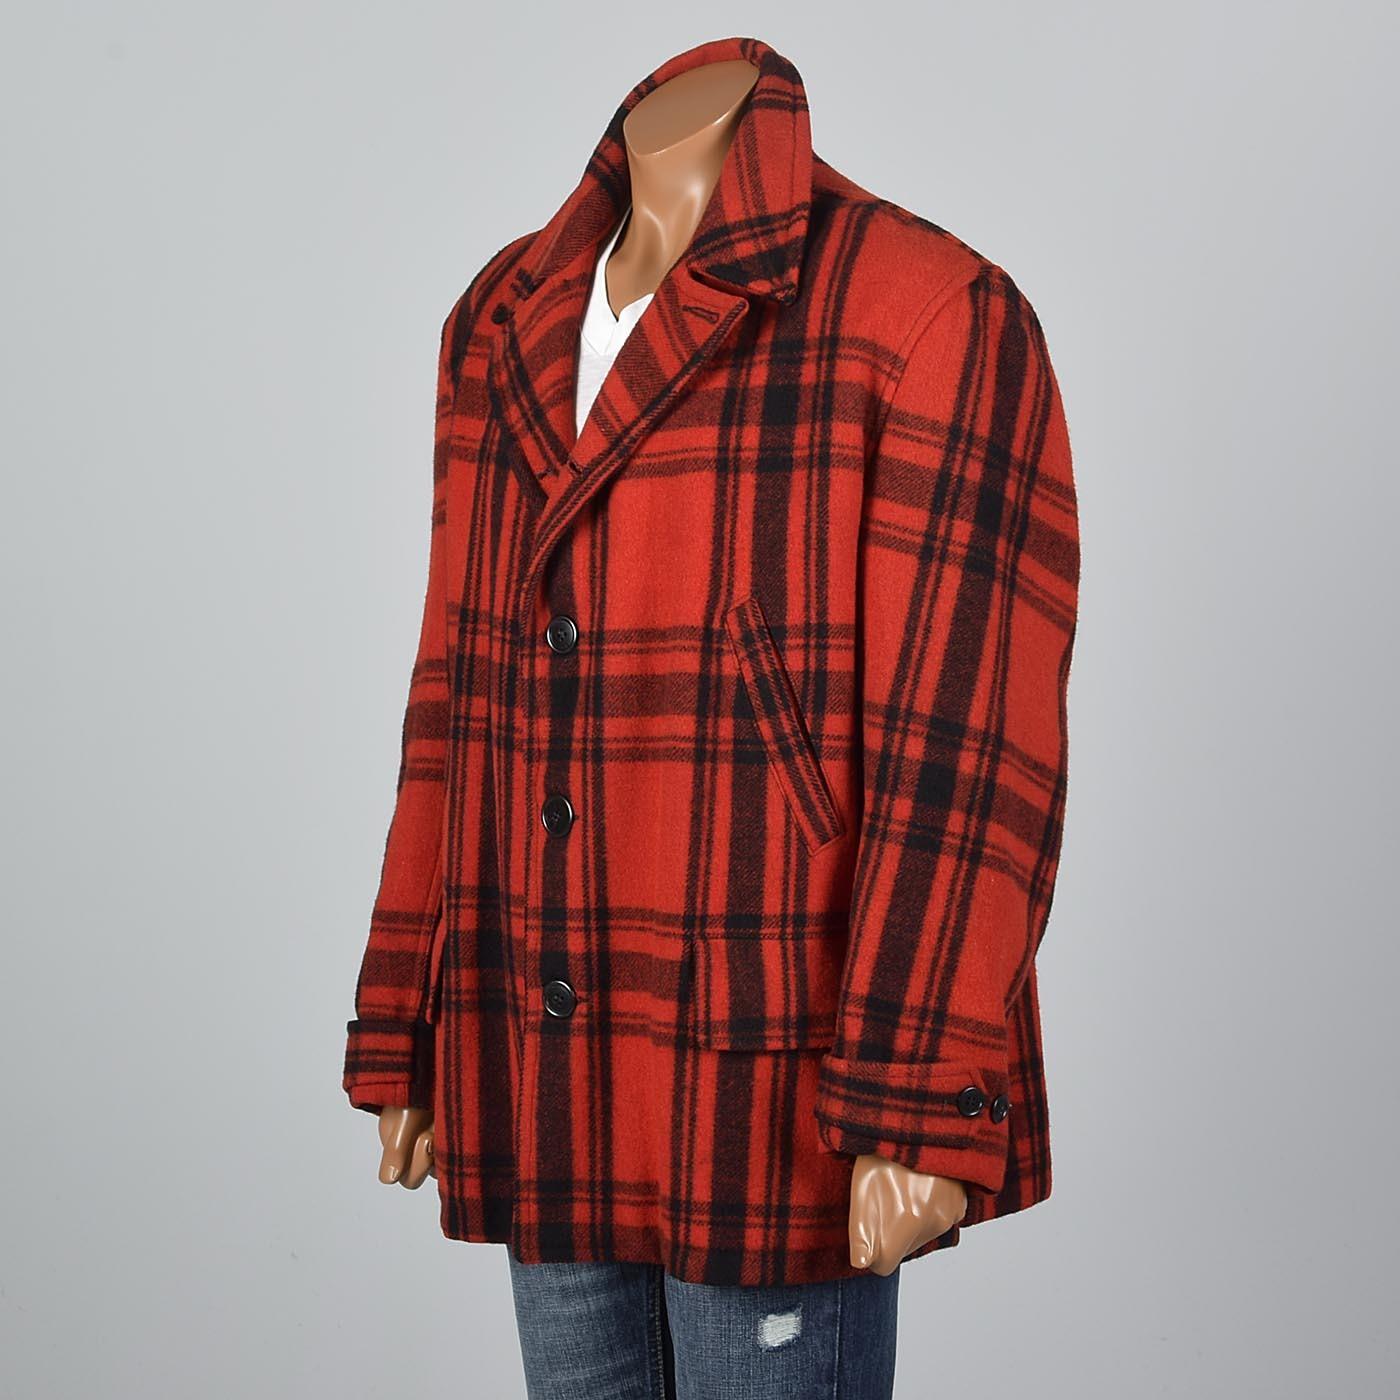 1940s Men's Red Plaid Hunting Coat by Merrill Woolen Mills